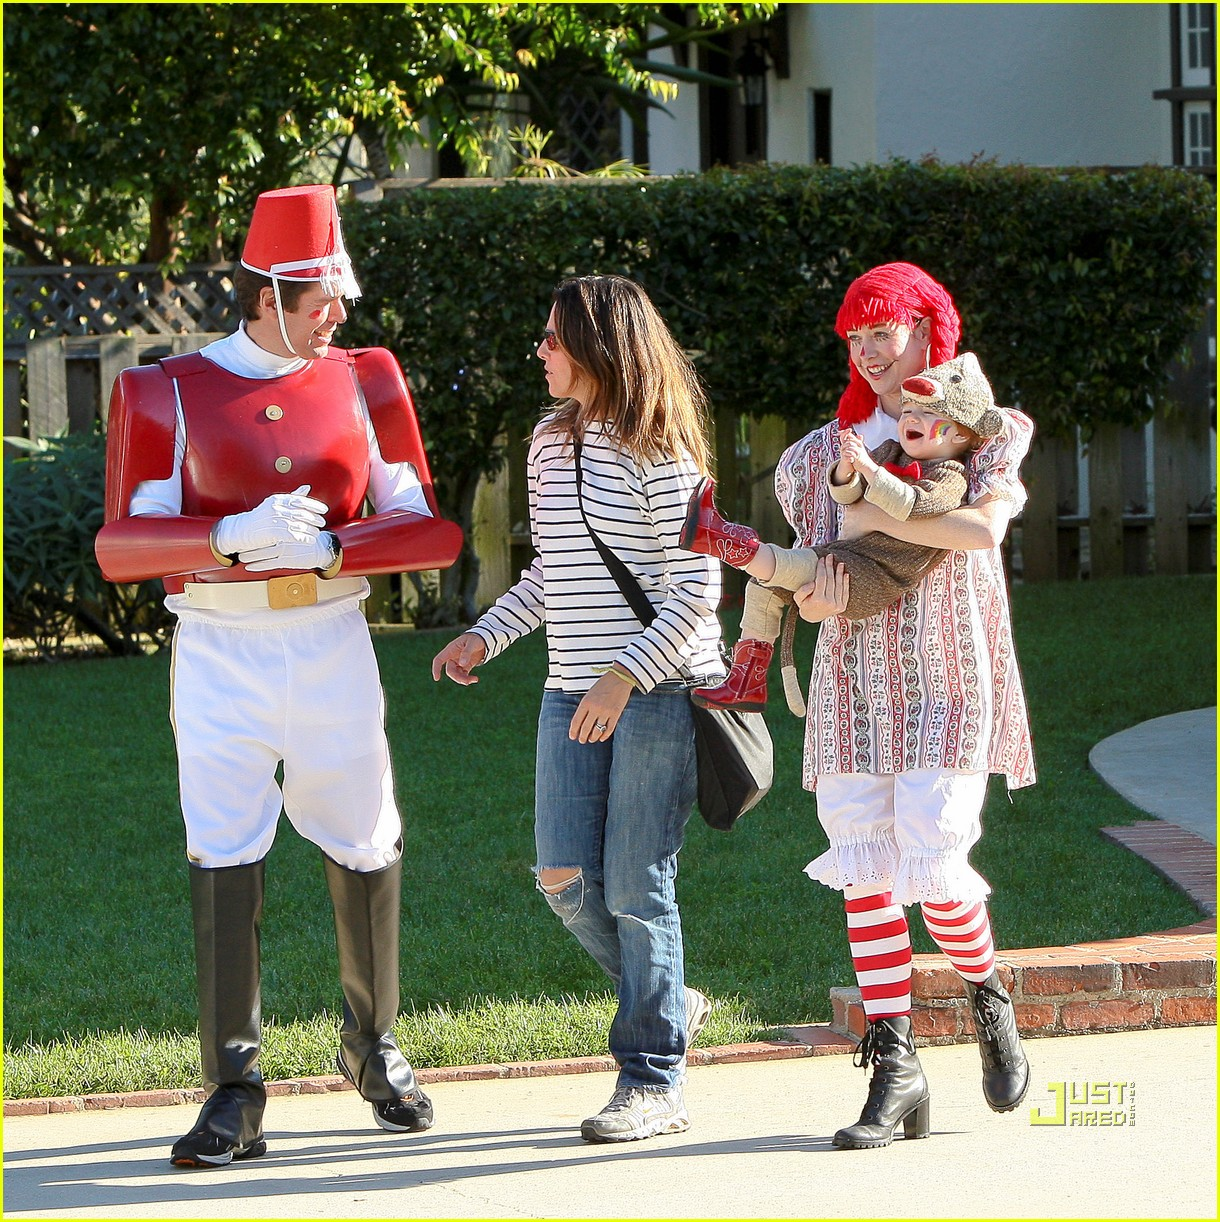 alyson hannigan: satyana monkeys around this halloween!: photo